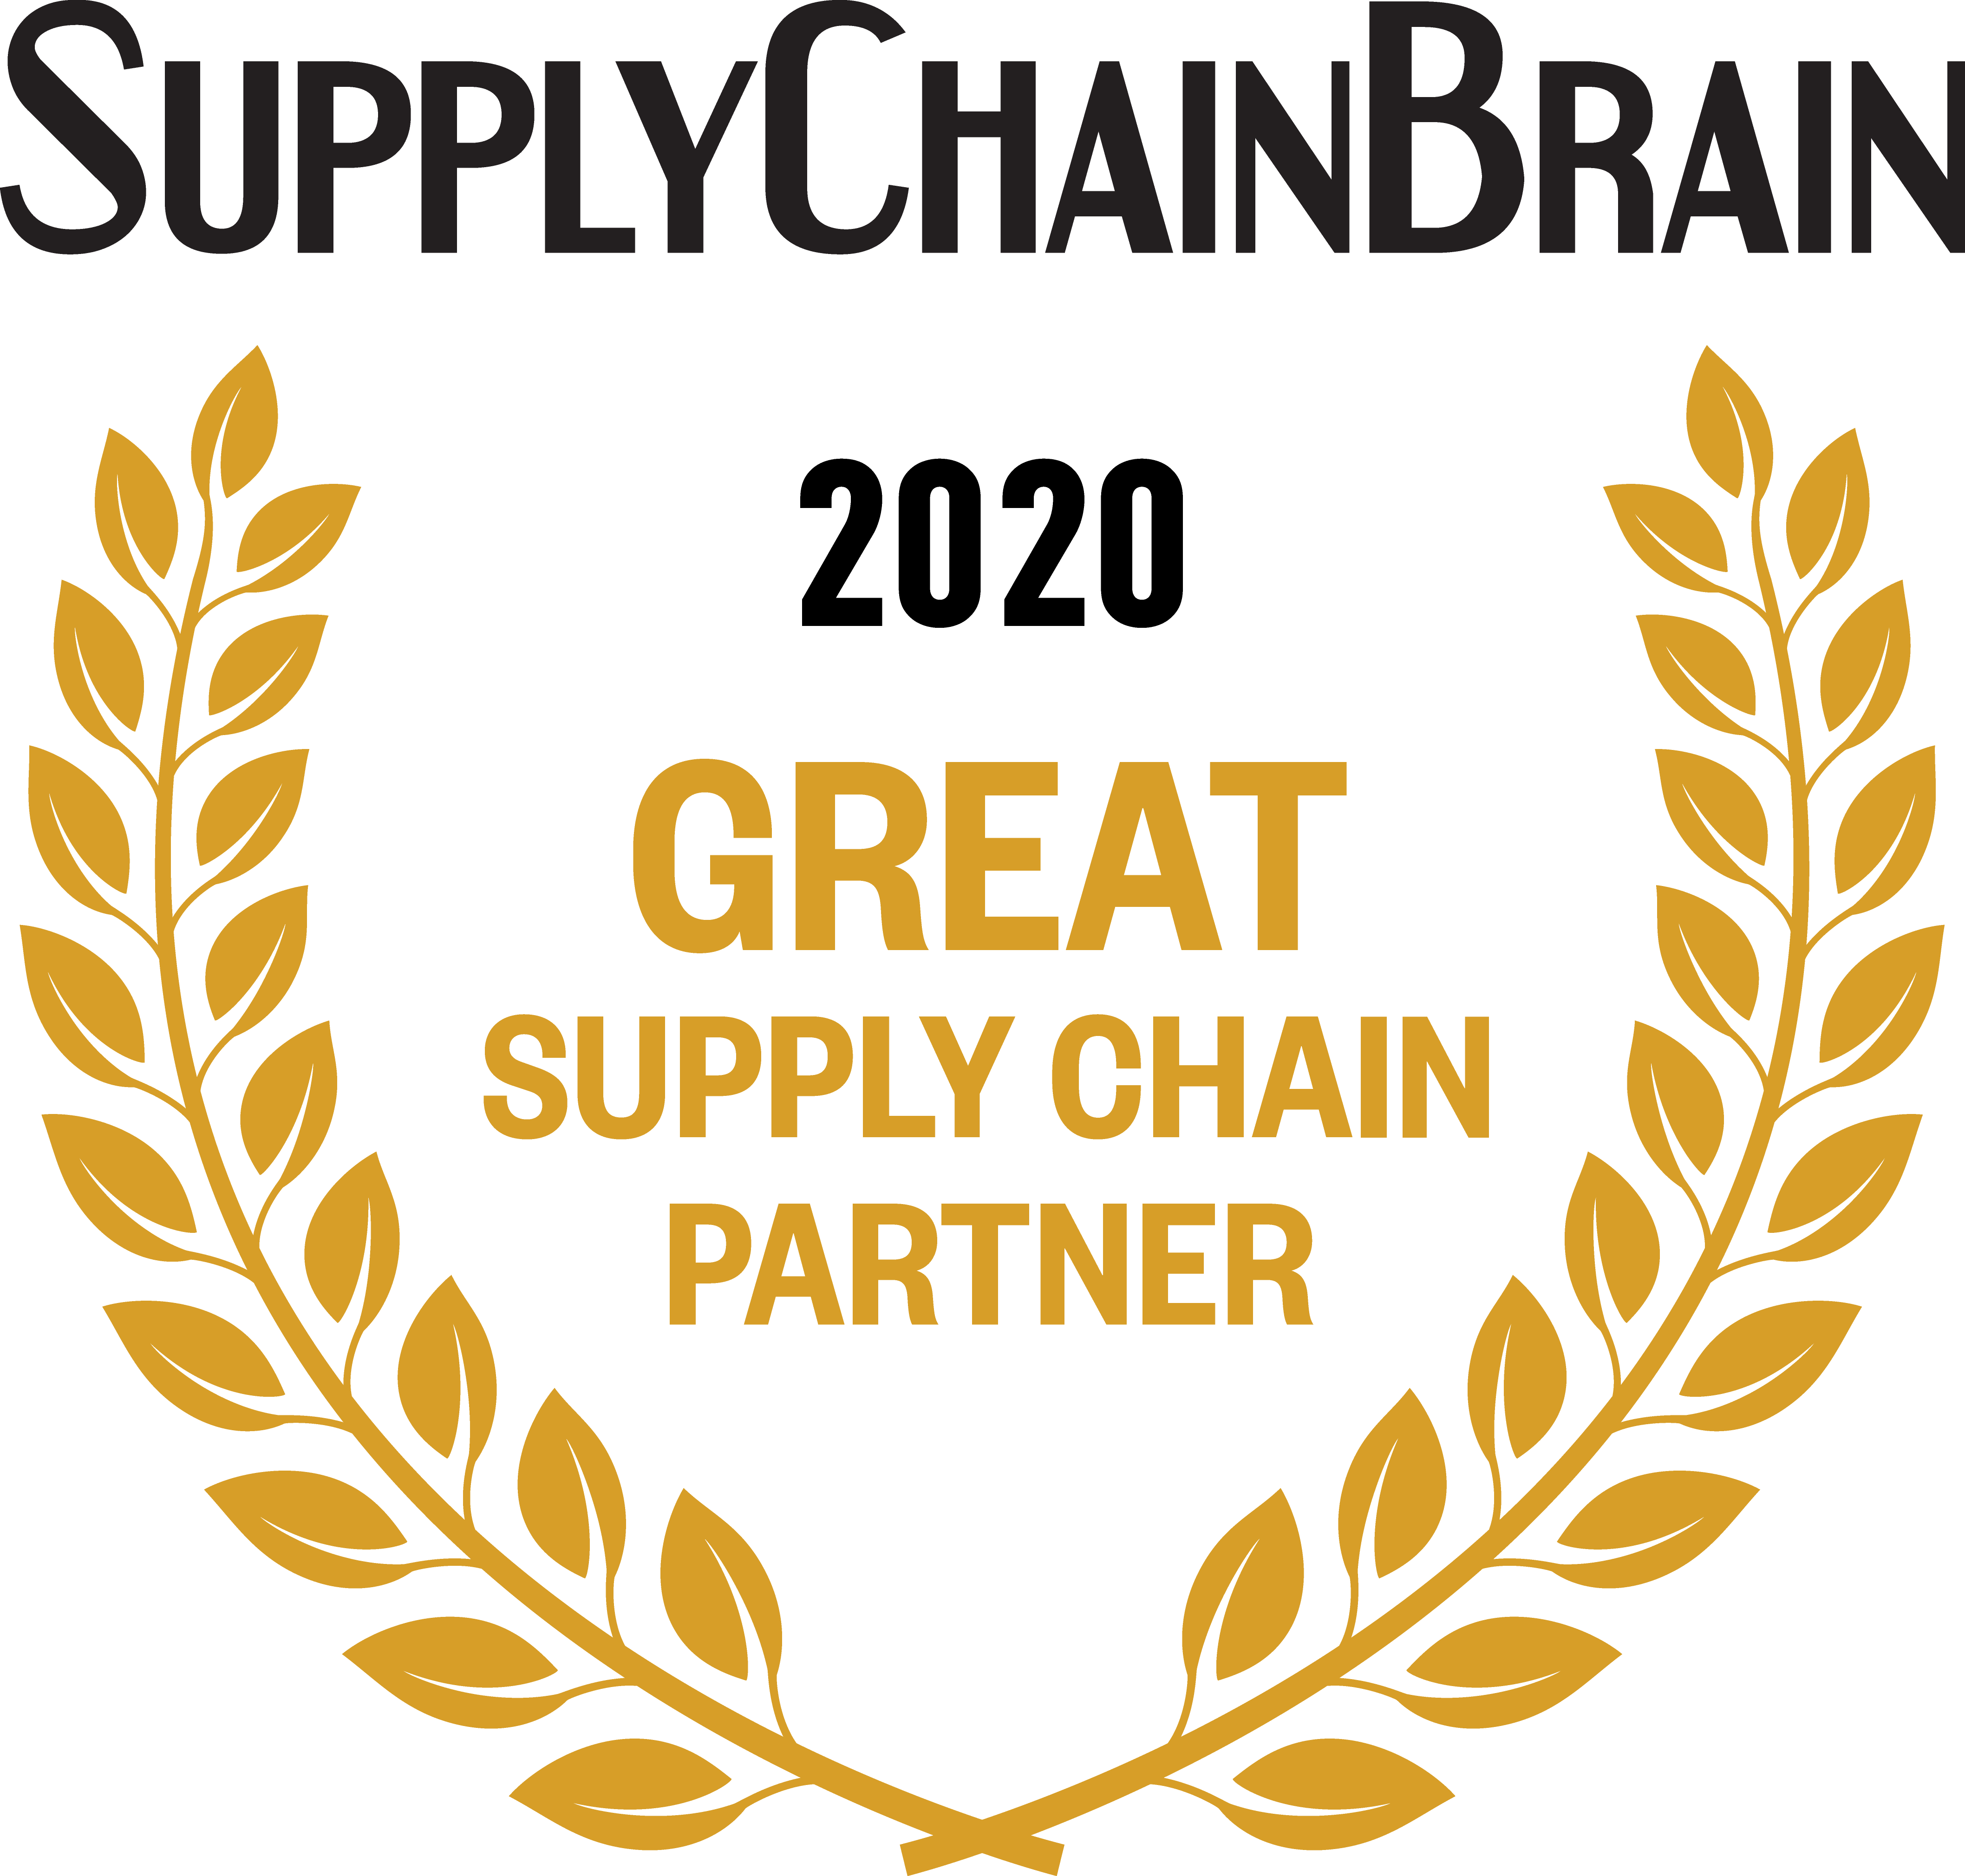 Great Supply Chain Partner 2020